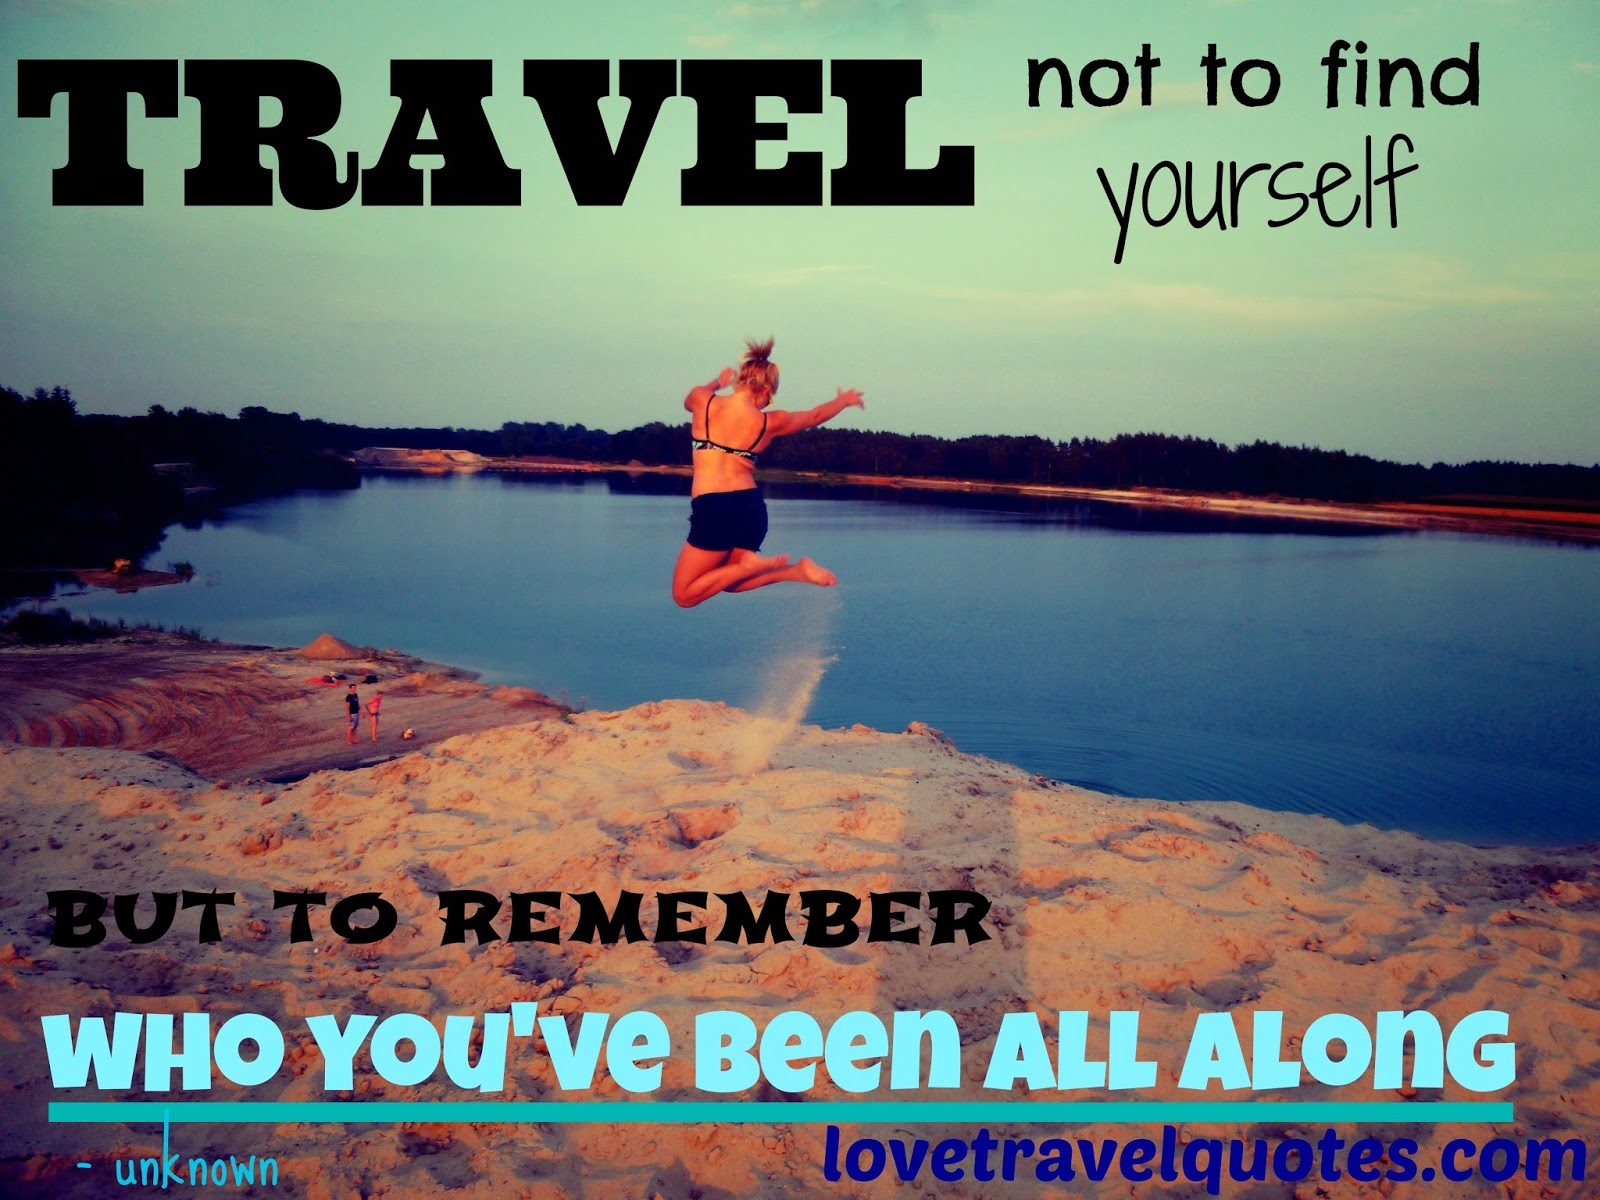 travel not to find yourself, but to remember who you've been all along